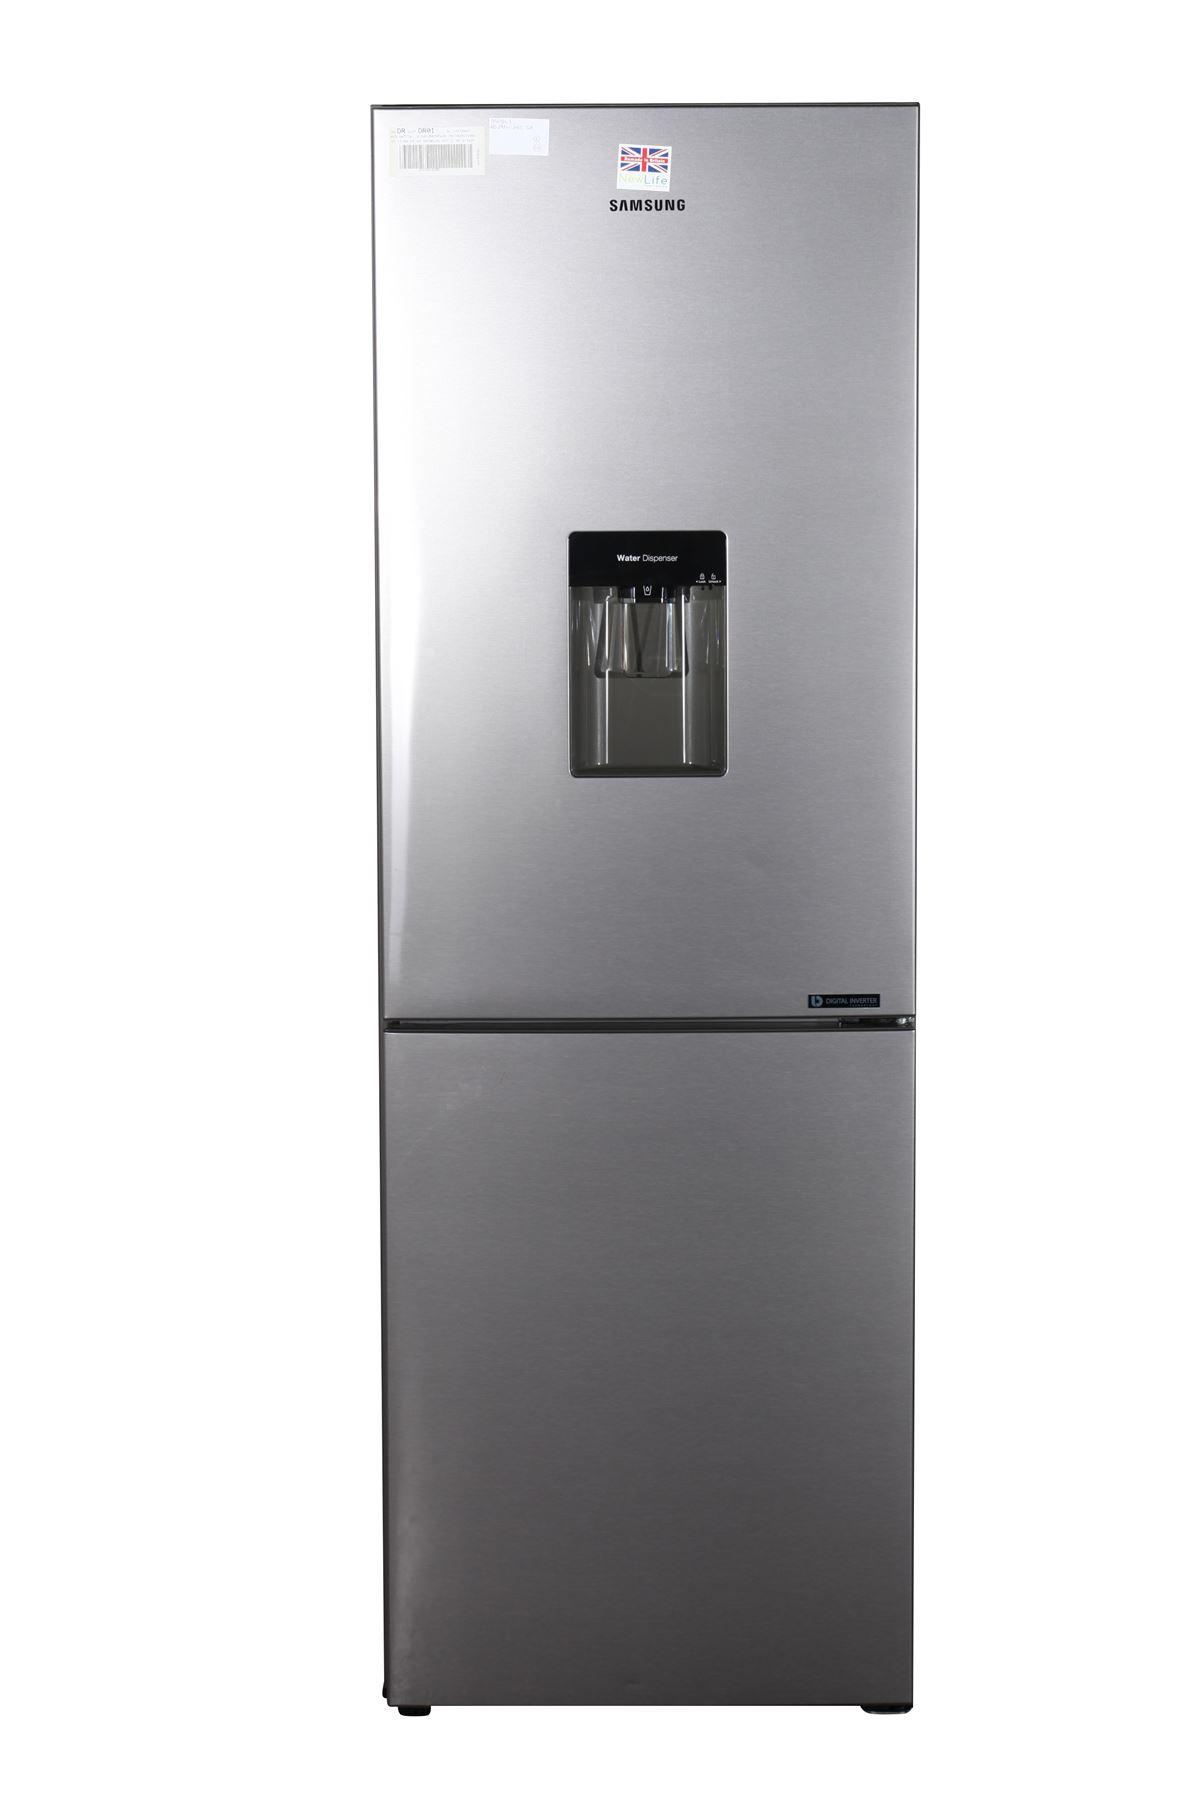 samsung fridge freezer water dispenser rb29fwjndsa silver online store. Black Bedroom Furniture Sets. Home Design Ideas